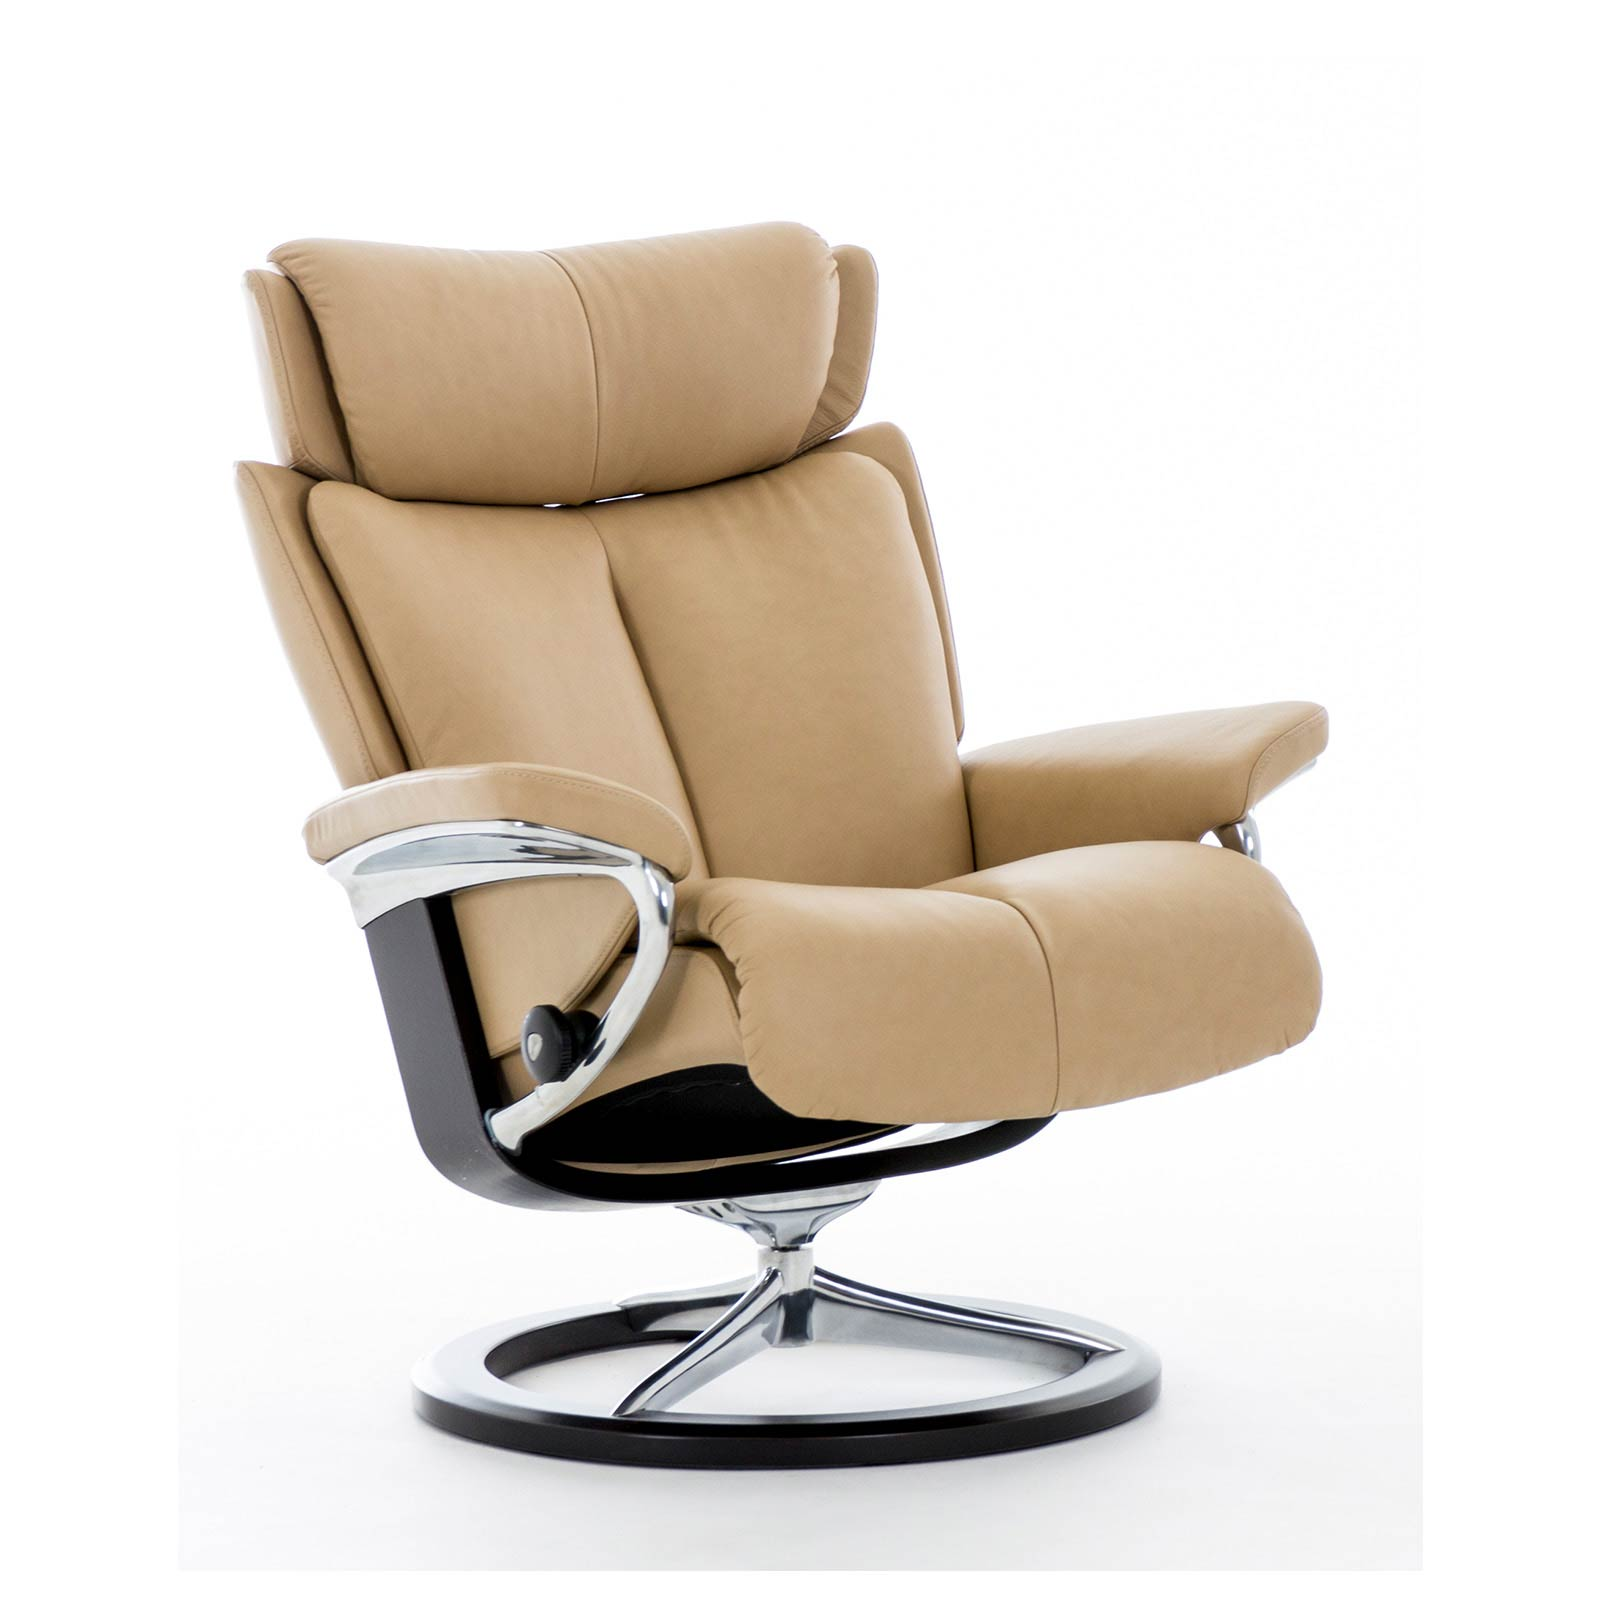 Stresless Stressless Sessel Magic M Leder Paloma Sand Gestell Signature Ohne Hocker